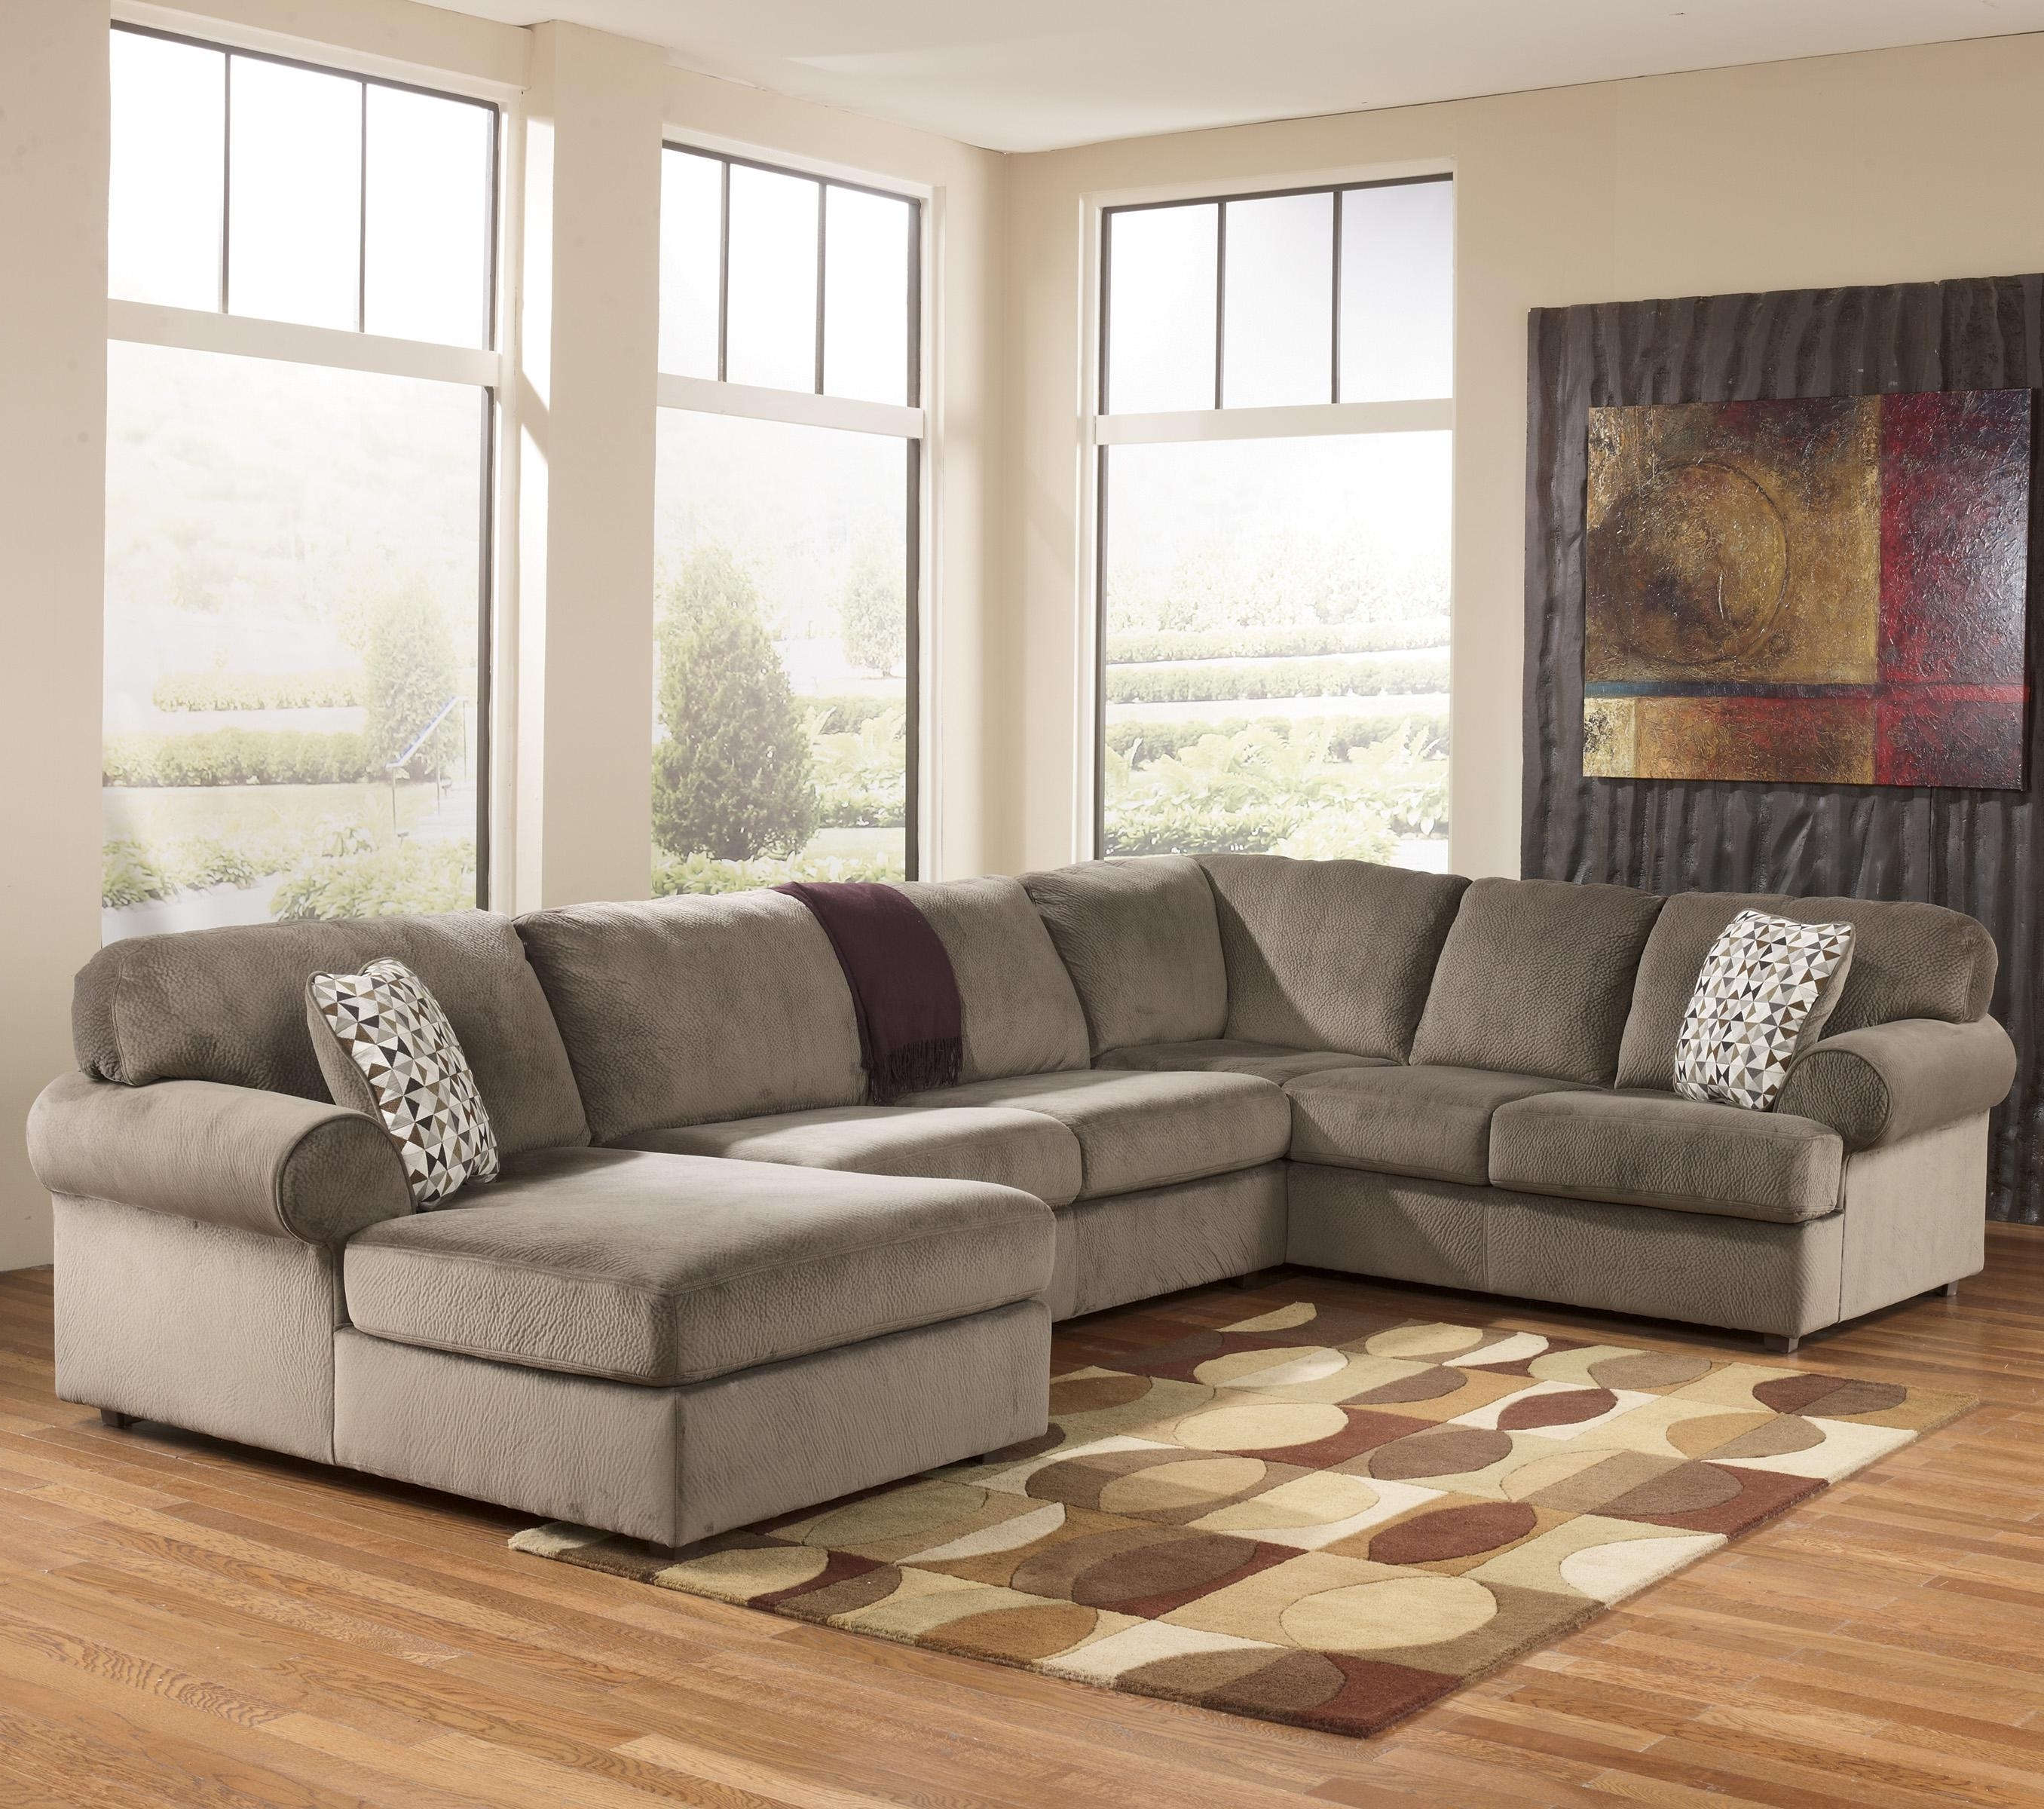 Well Liked Clarksville Tn Sectional Sofas In Signature Designashley Jessa Place – Dune Casual Sectional (View 9 of 15)